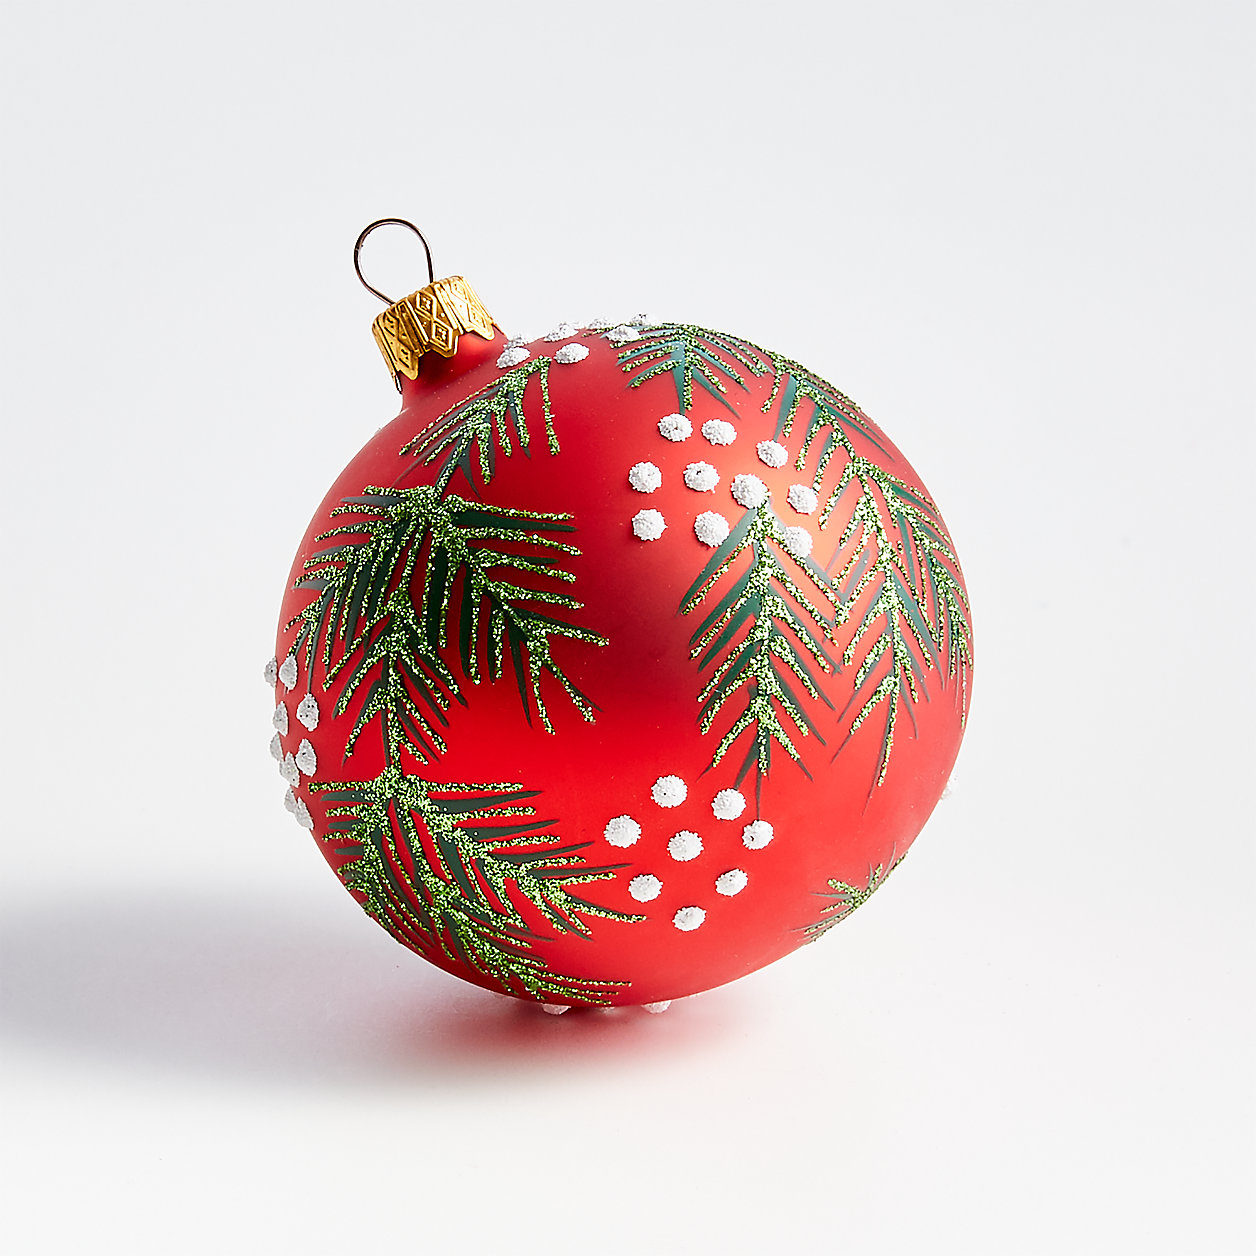 The best beautiful 2020 luxury Christmas ornaments to give as a gift